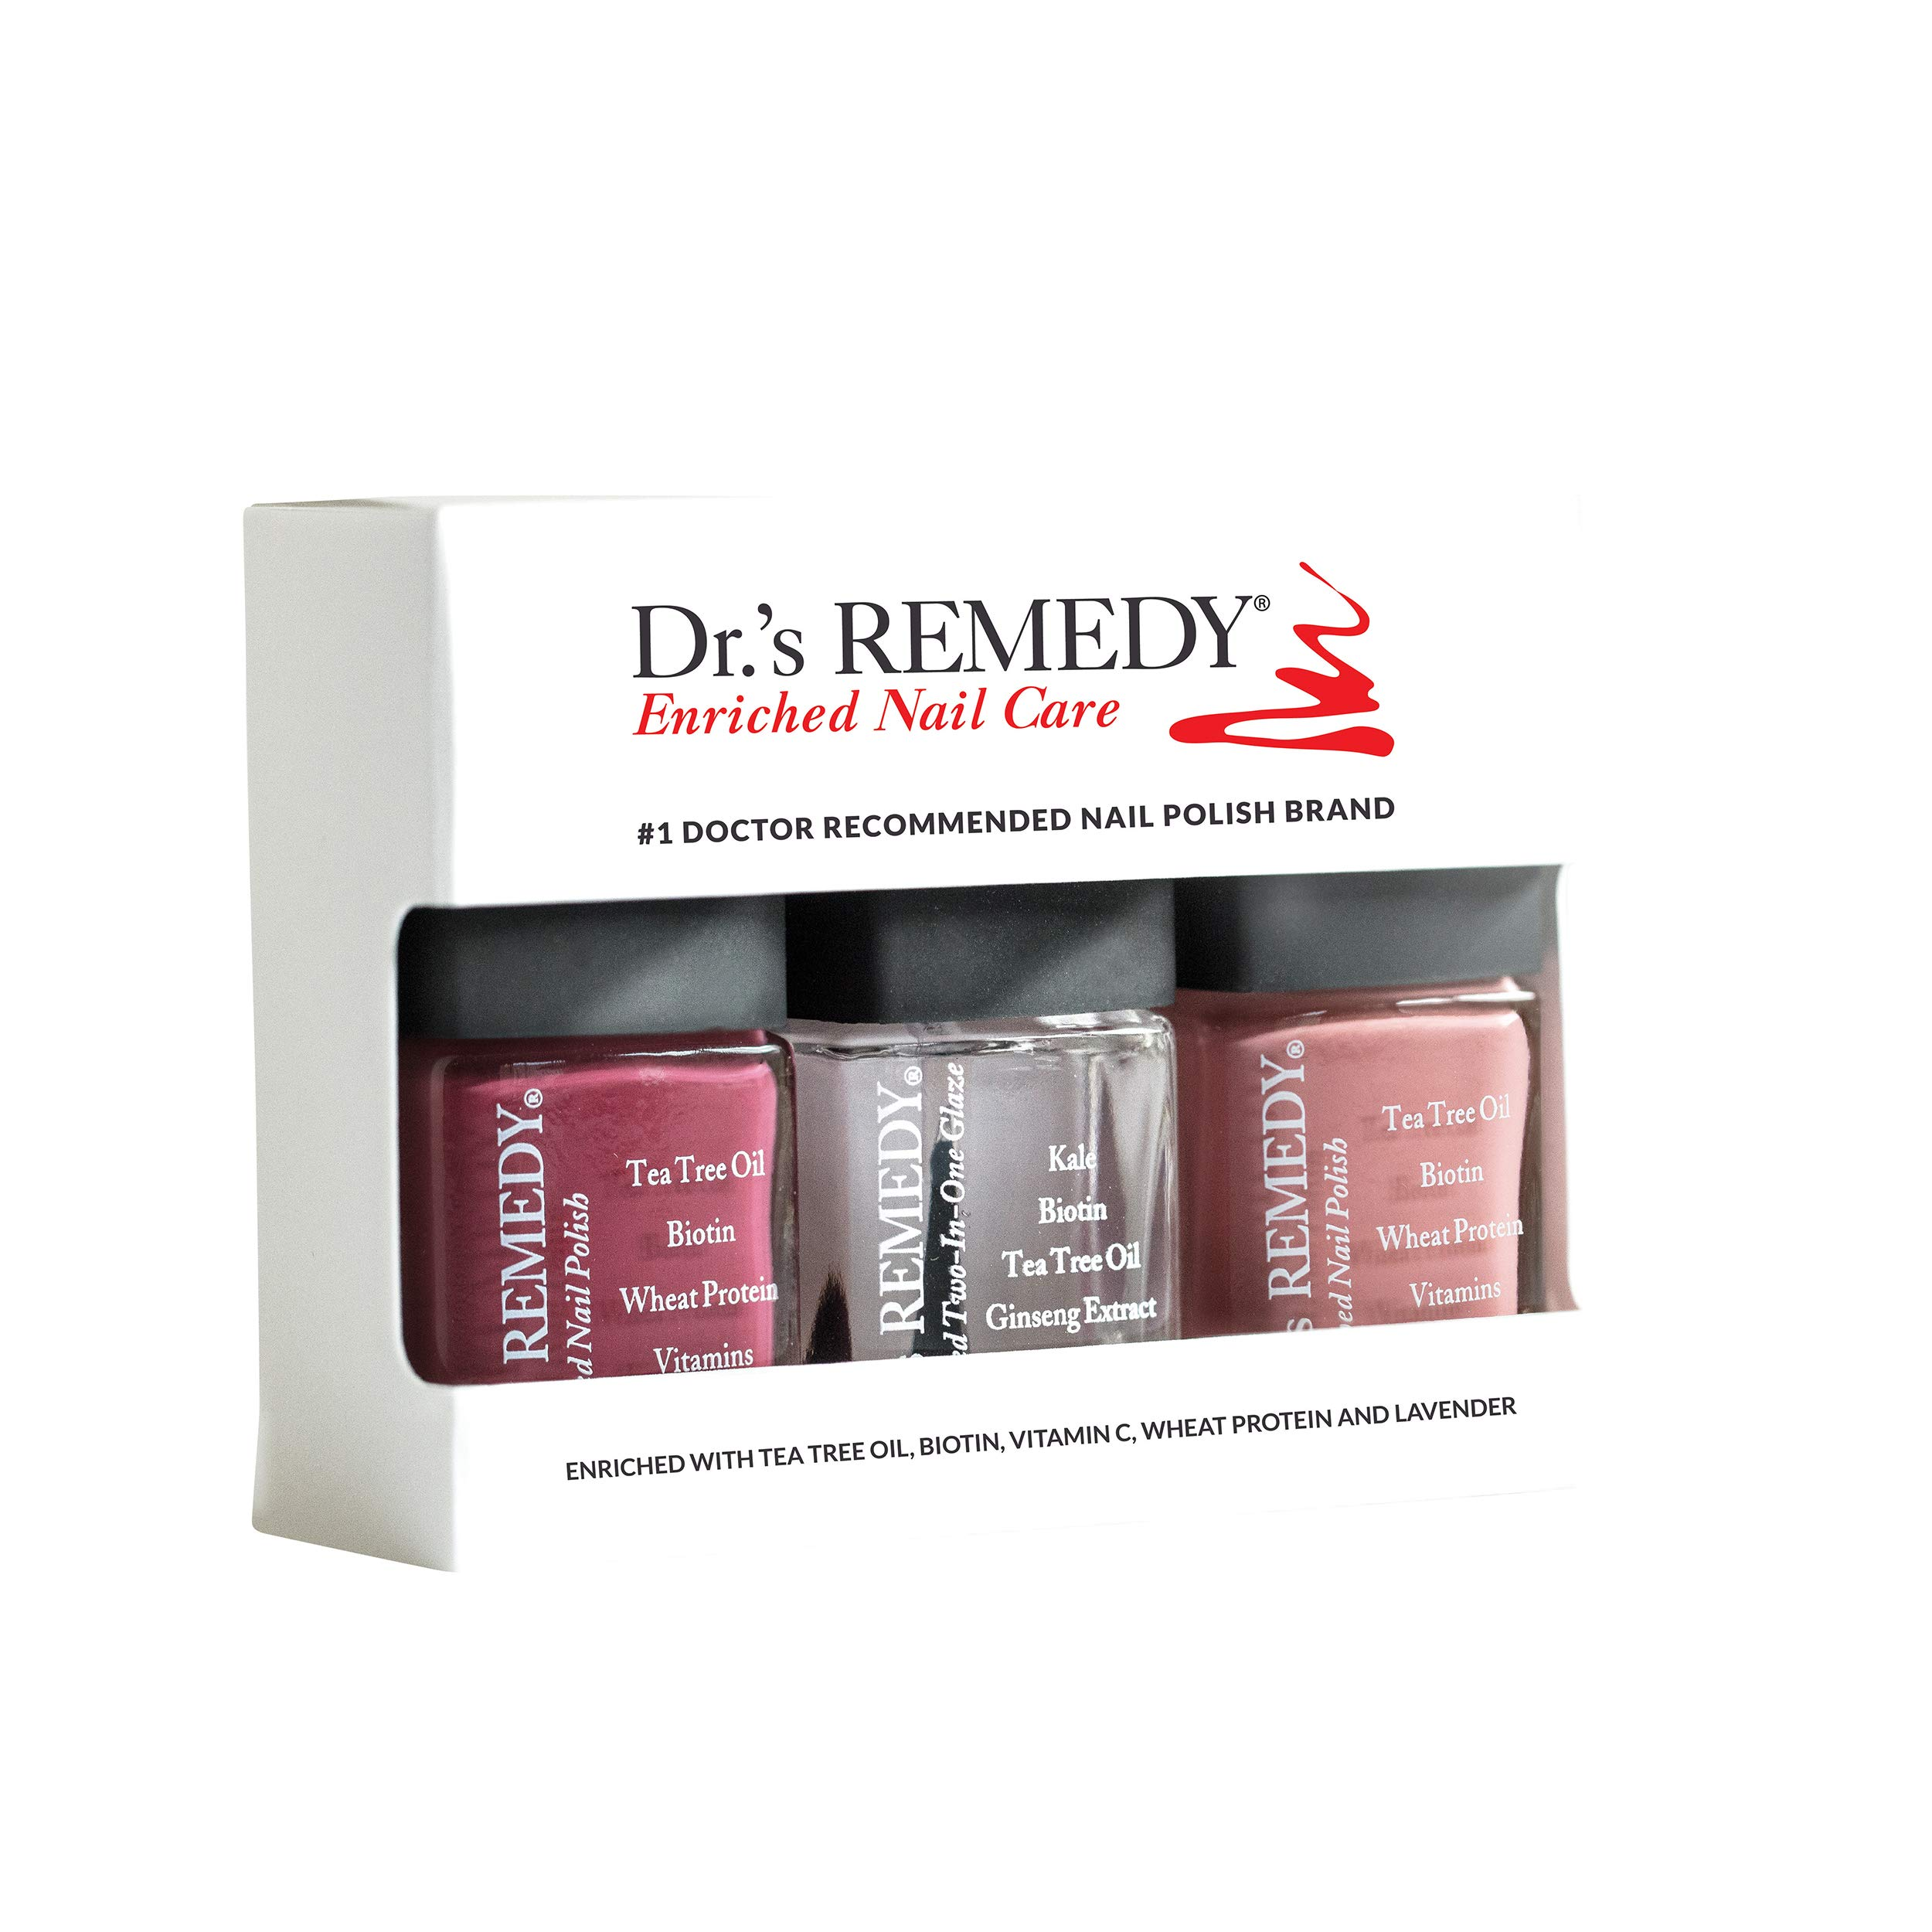 Dr.'s REMEDY Enriched Nail Polish, ANNIVERSARY 3Piece Boxed Set by Dr.'s Remedy